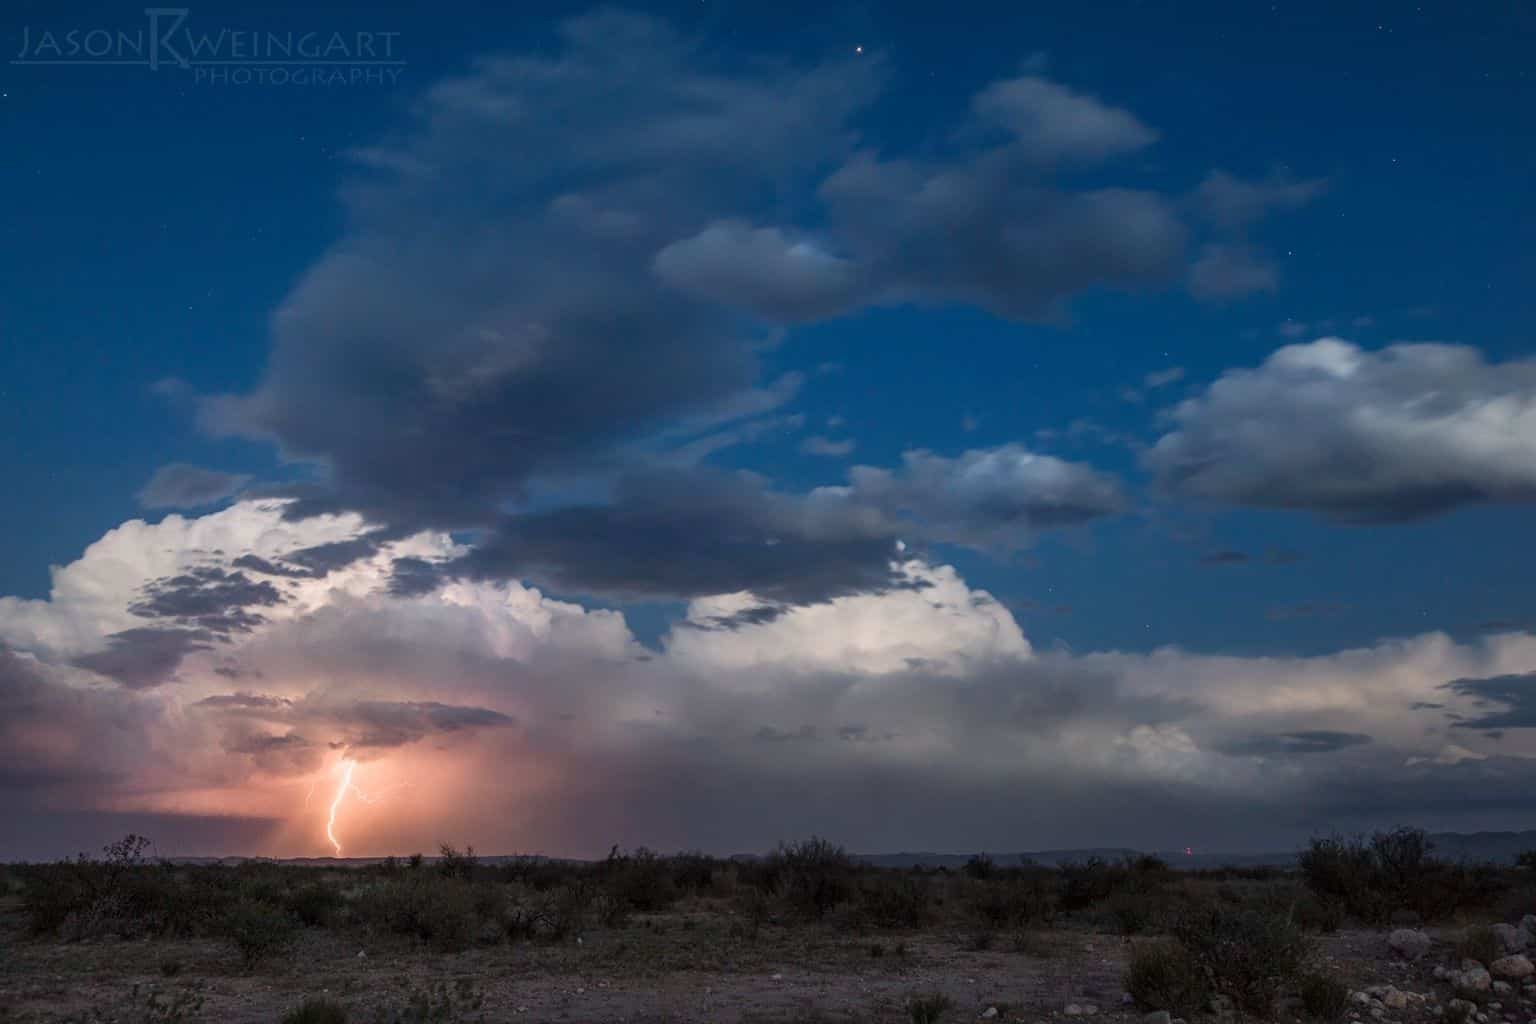 Told participants at my astrophotography workshop on Thursday that we had a chance of lightning beneath stars the following night. Big Bend delivered. Supercell at twilight on Friday evening outside of Alpine, Texas.